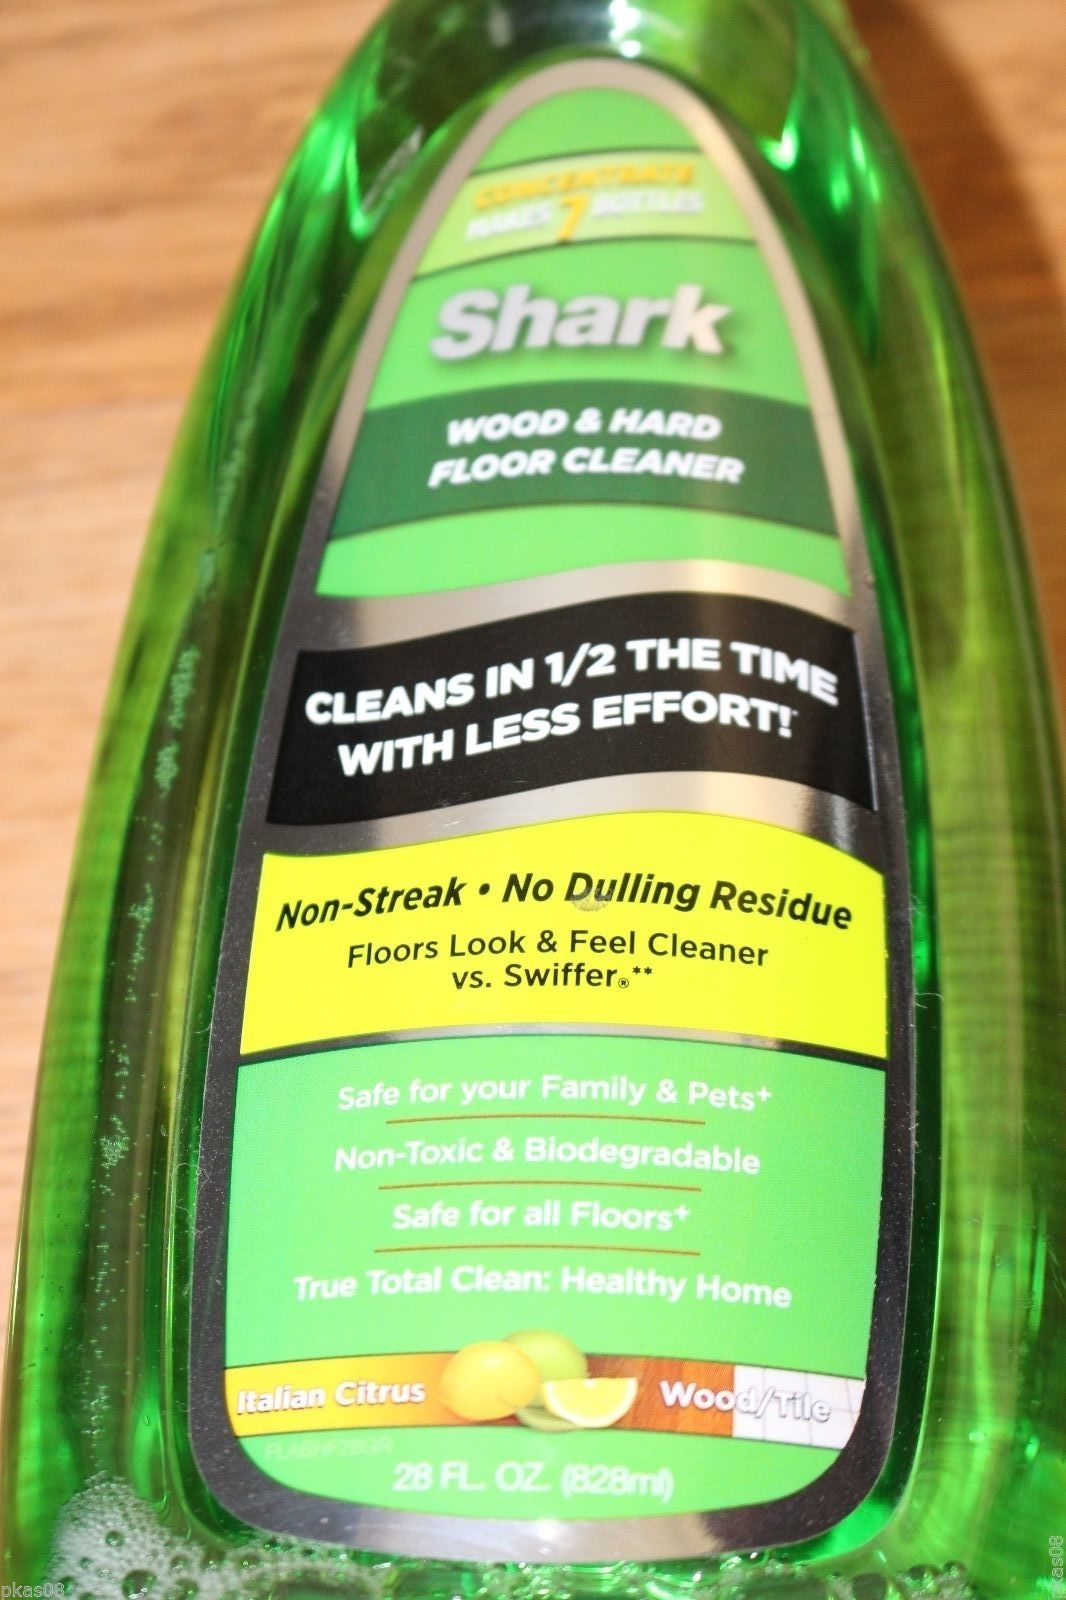 Cleaner For Hard Wood Floor: NEW Shark Wood & Hard Floor Cleaner (28 OZ.) Includes